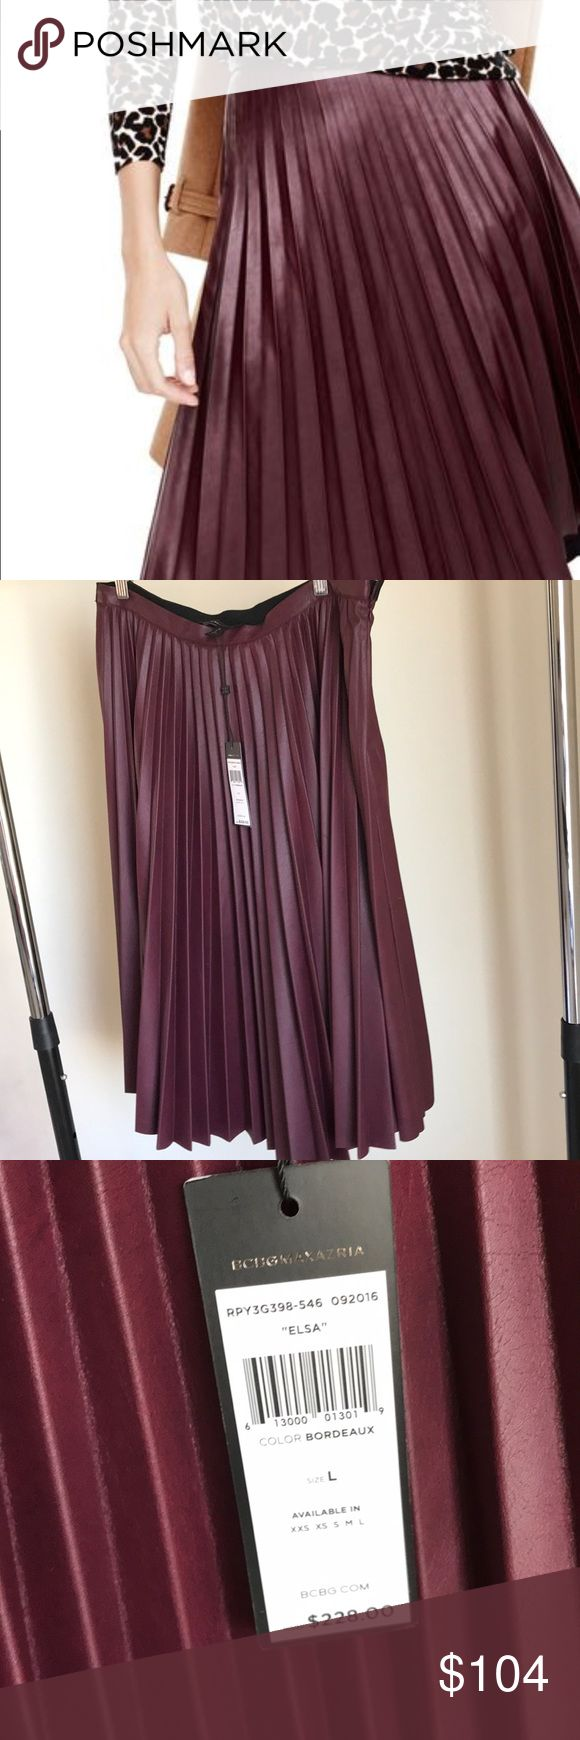 bcbgmaxazria elsa faux leather pleated skirts New with tags. Color - Bordeaux. BCBGMaxAzria Skirts Midi